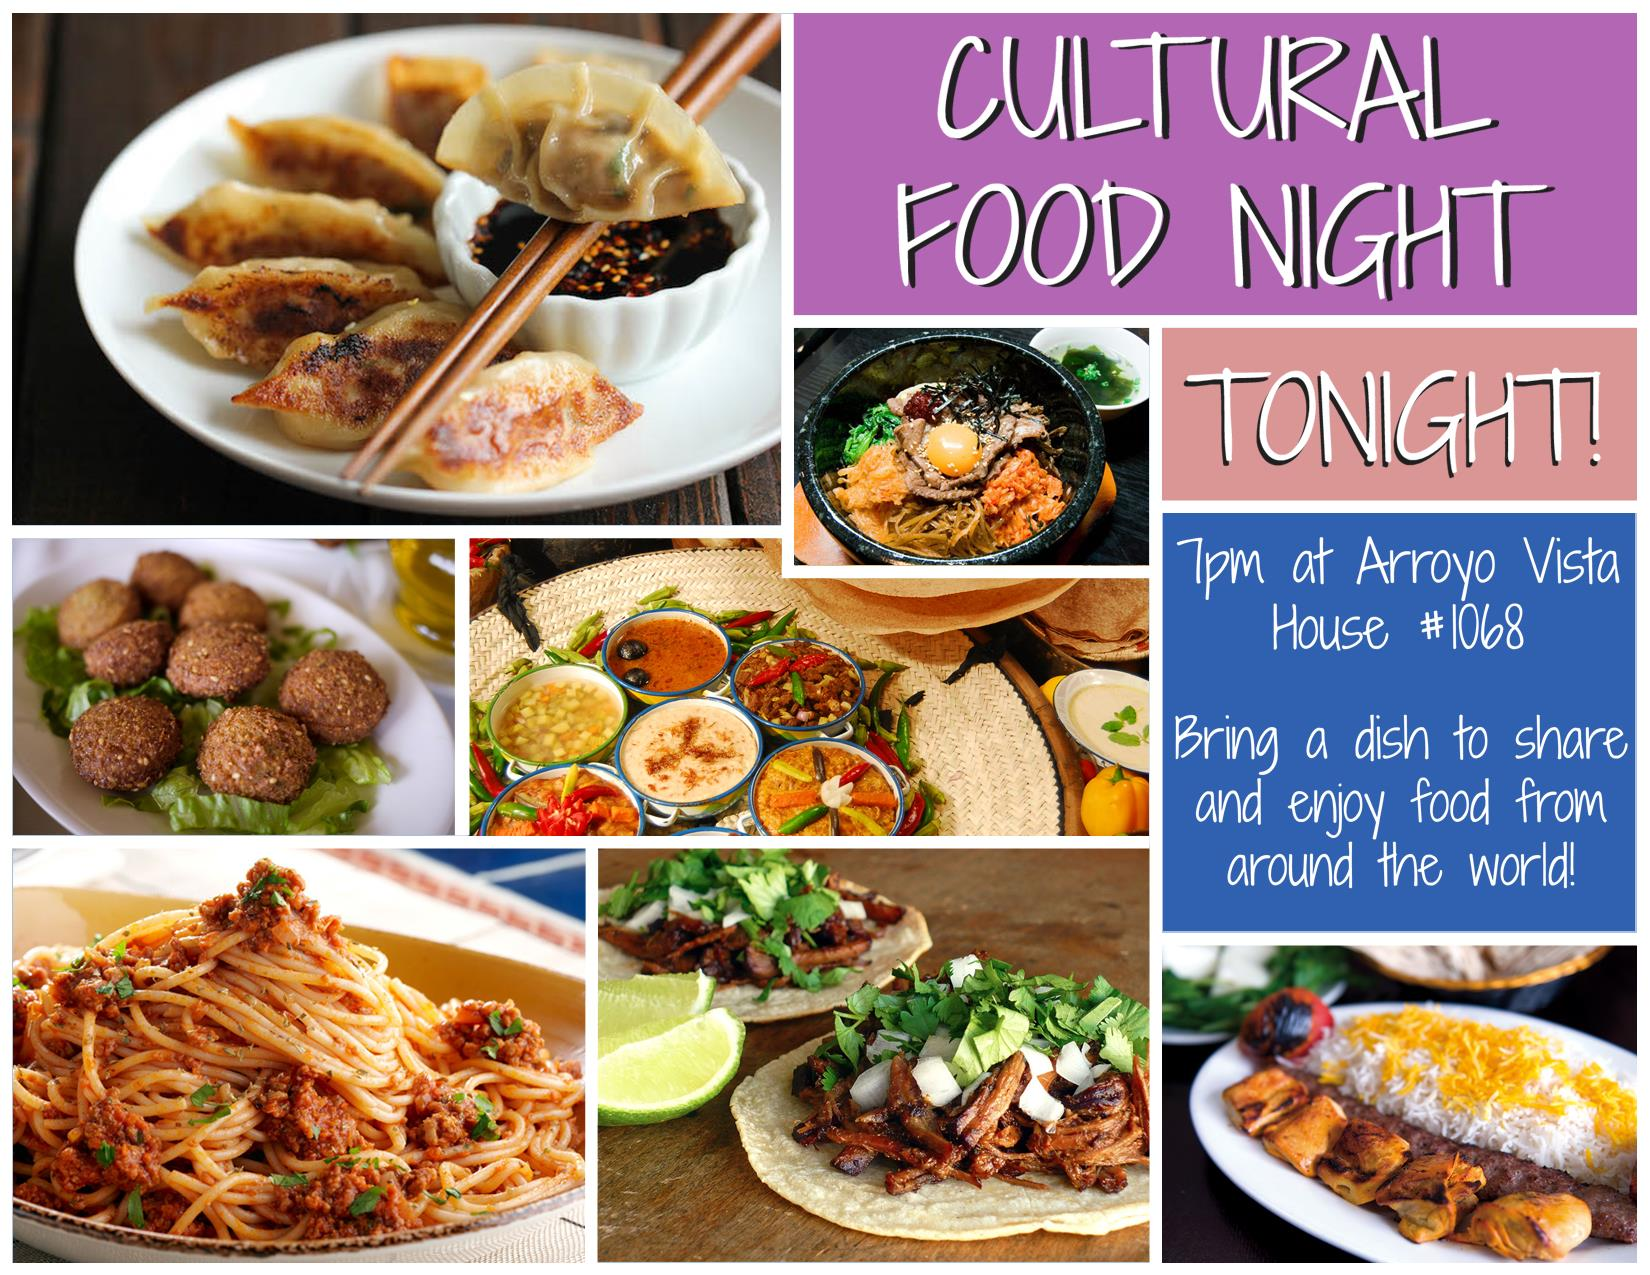 essays on food and culture Culture in the world essay food by | culture in the world essay food oct 21 5000 word dissertation kcl my future university essay job police, ielts essay writing topic crime open research paper discussion of results the robots essay history of dance  topic about narrative essays descriptions.